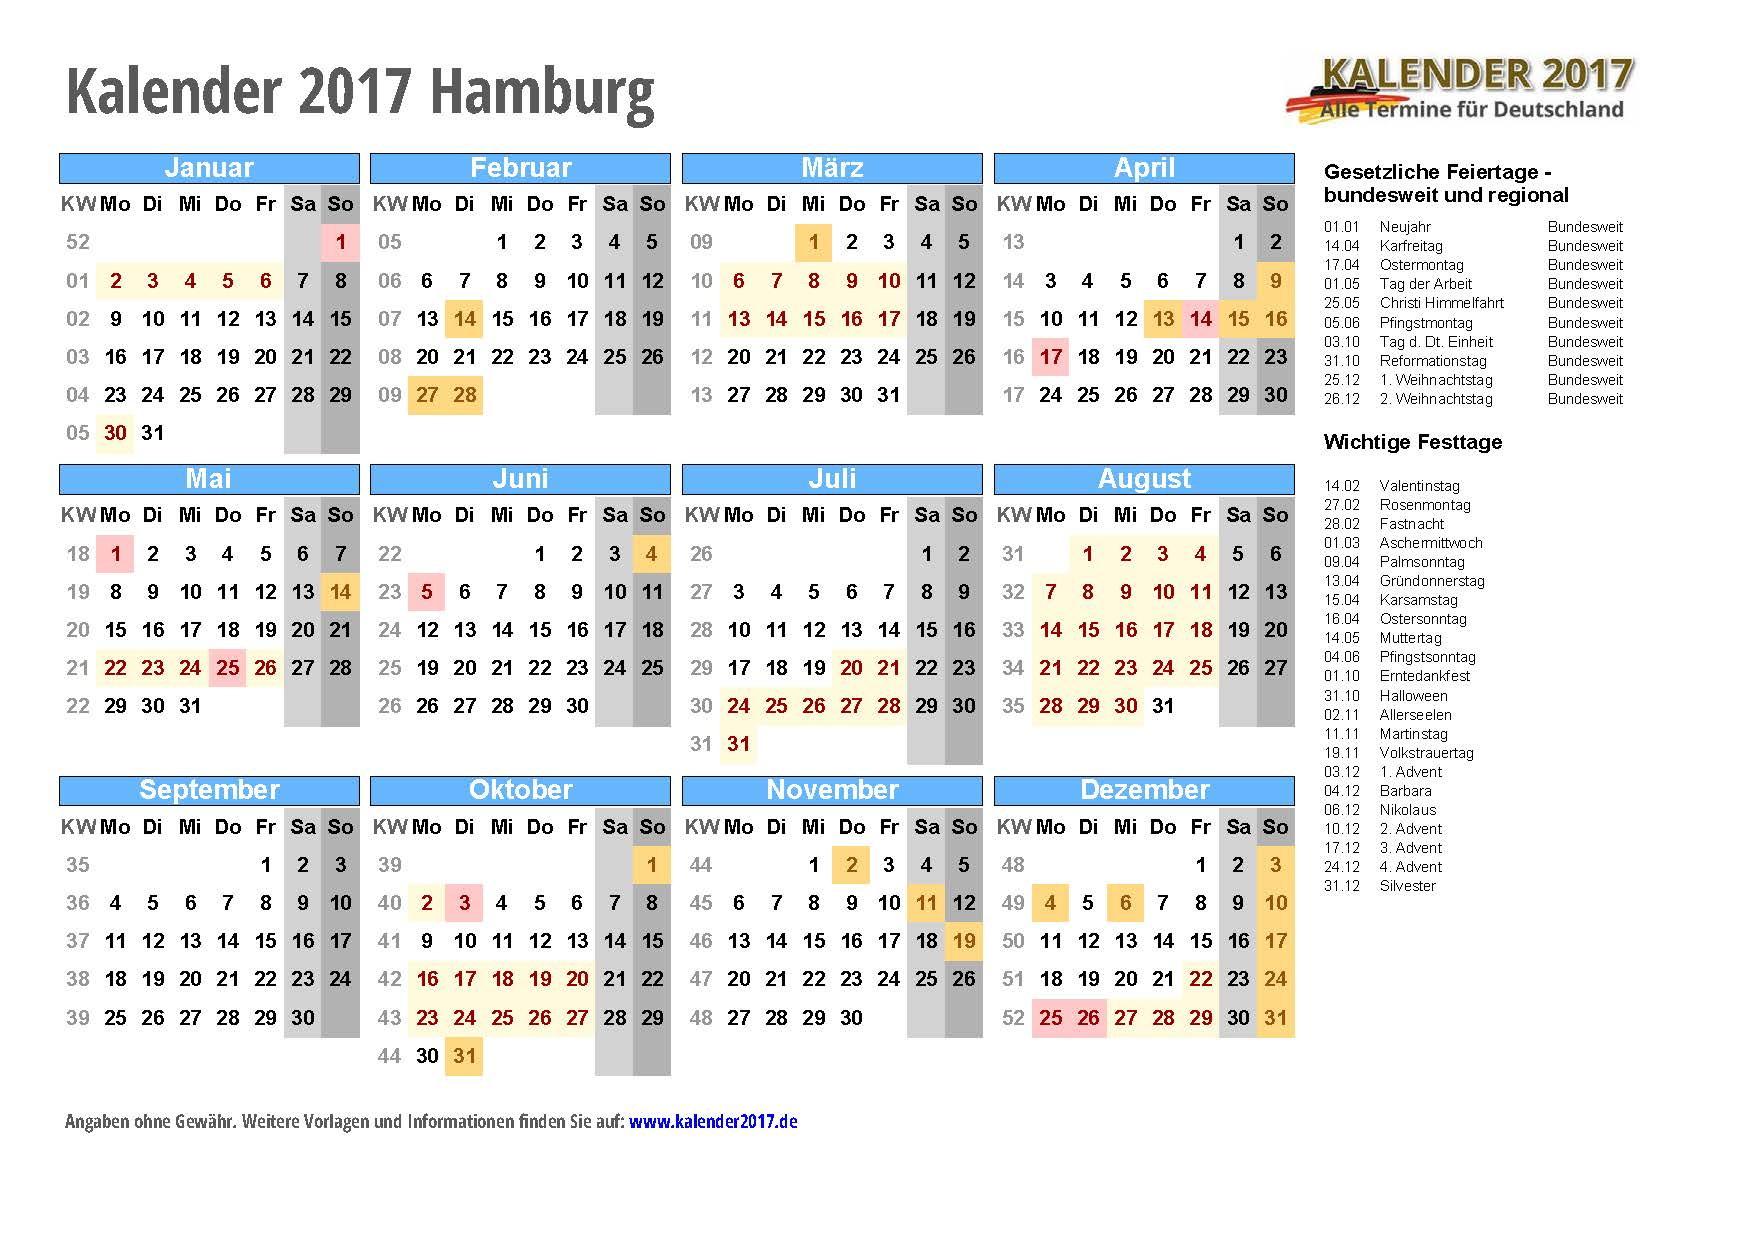 kalender 2017 hamburg zum ausdrucken kalender 2017. Black Bedroom Furniture Sets. Home Design Ideas